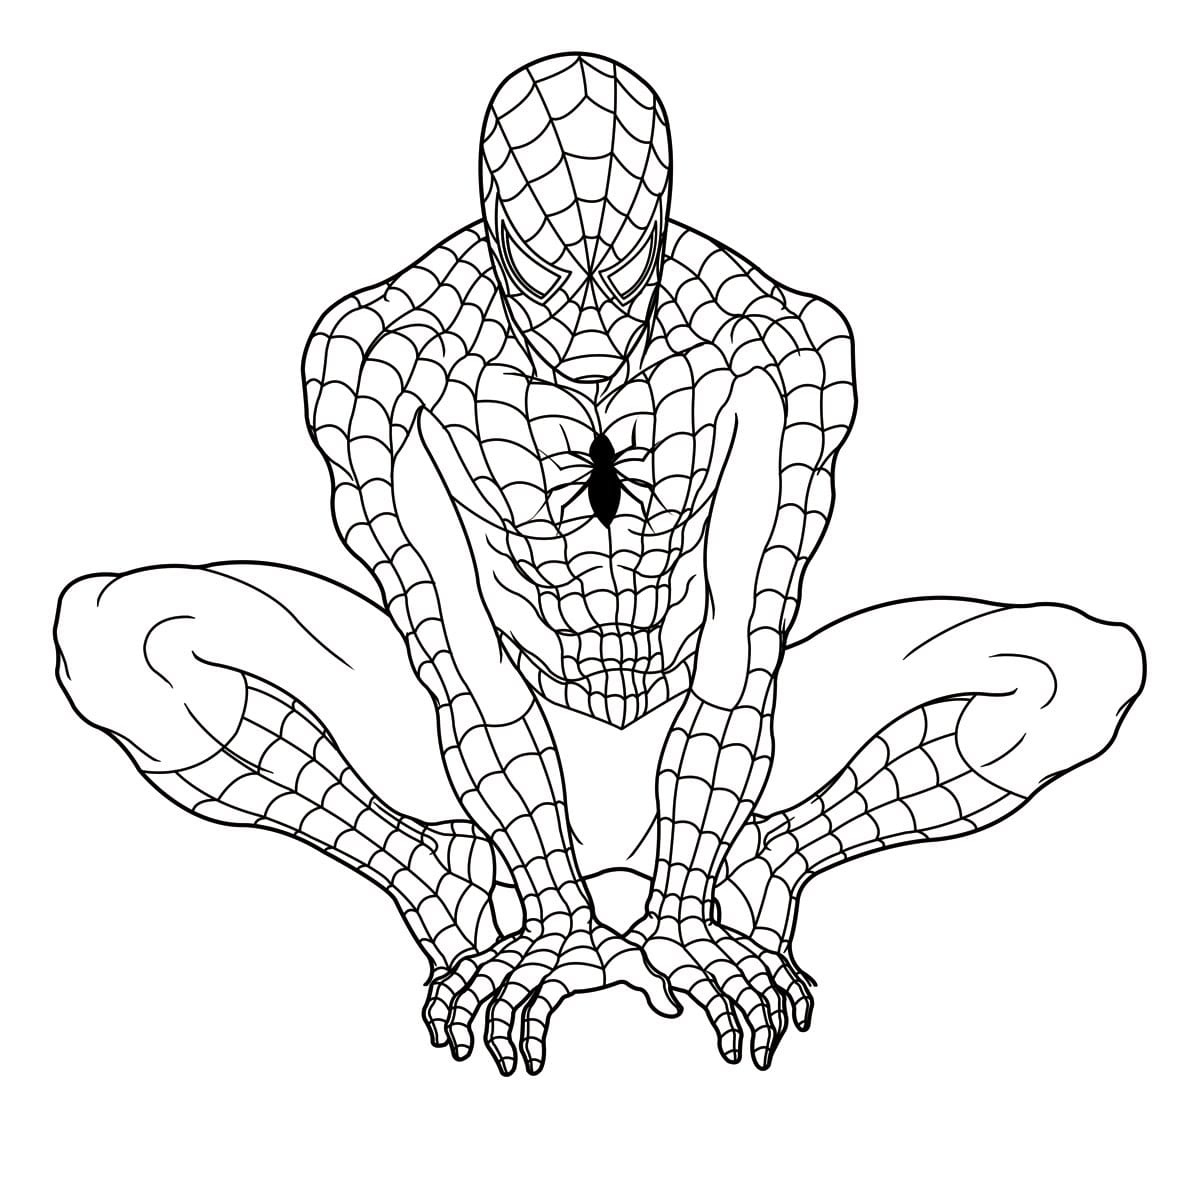 20 Printable Spiderman Coloring Pages Collections | FREE COLORING ...